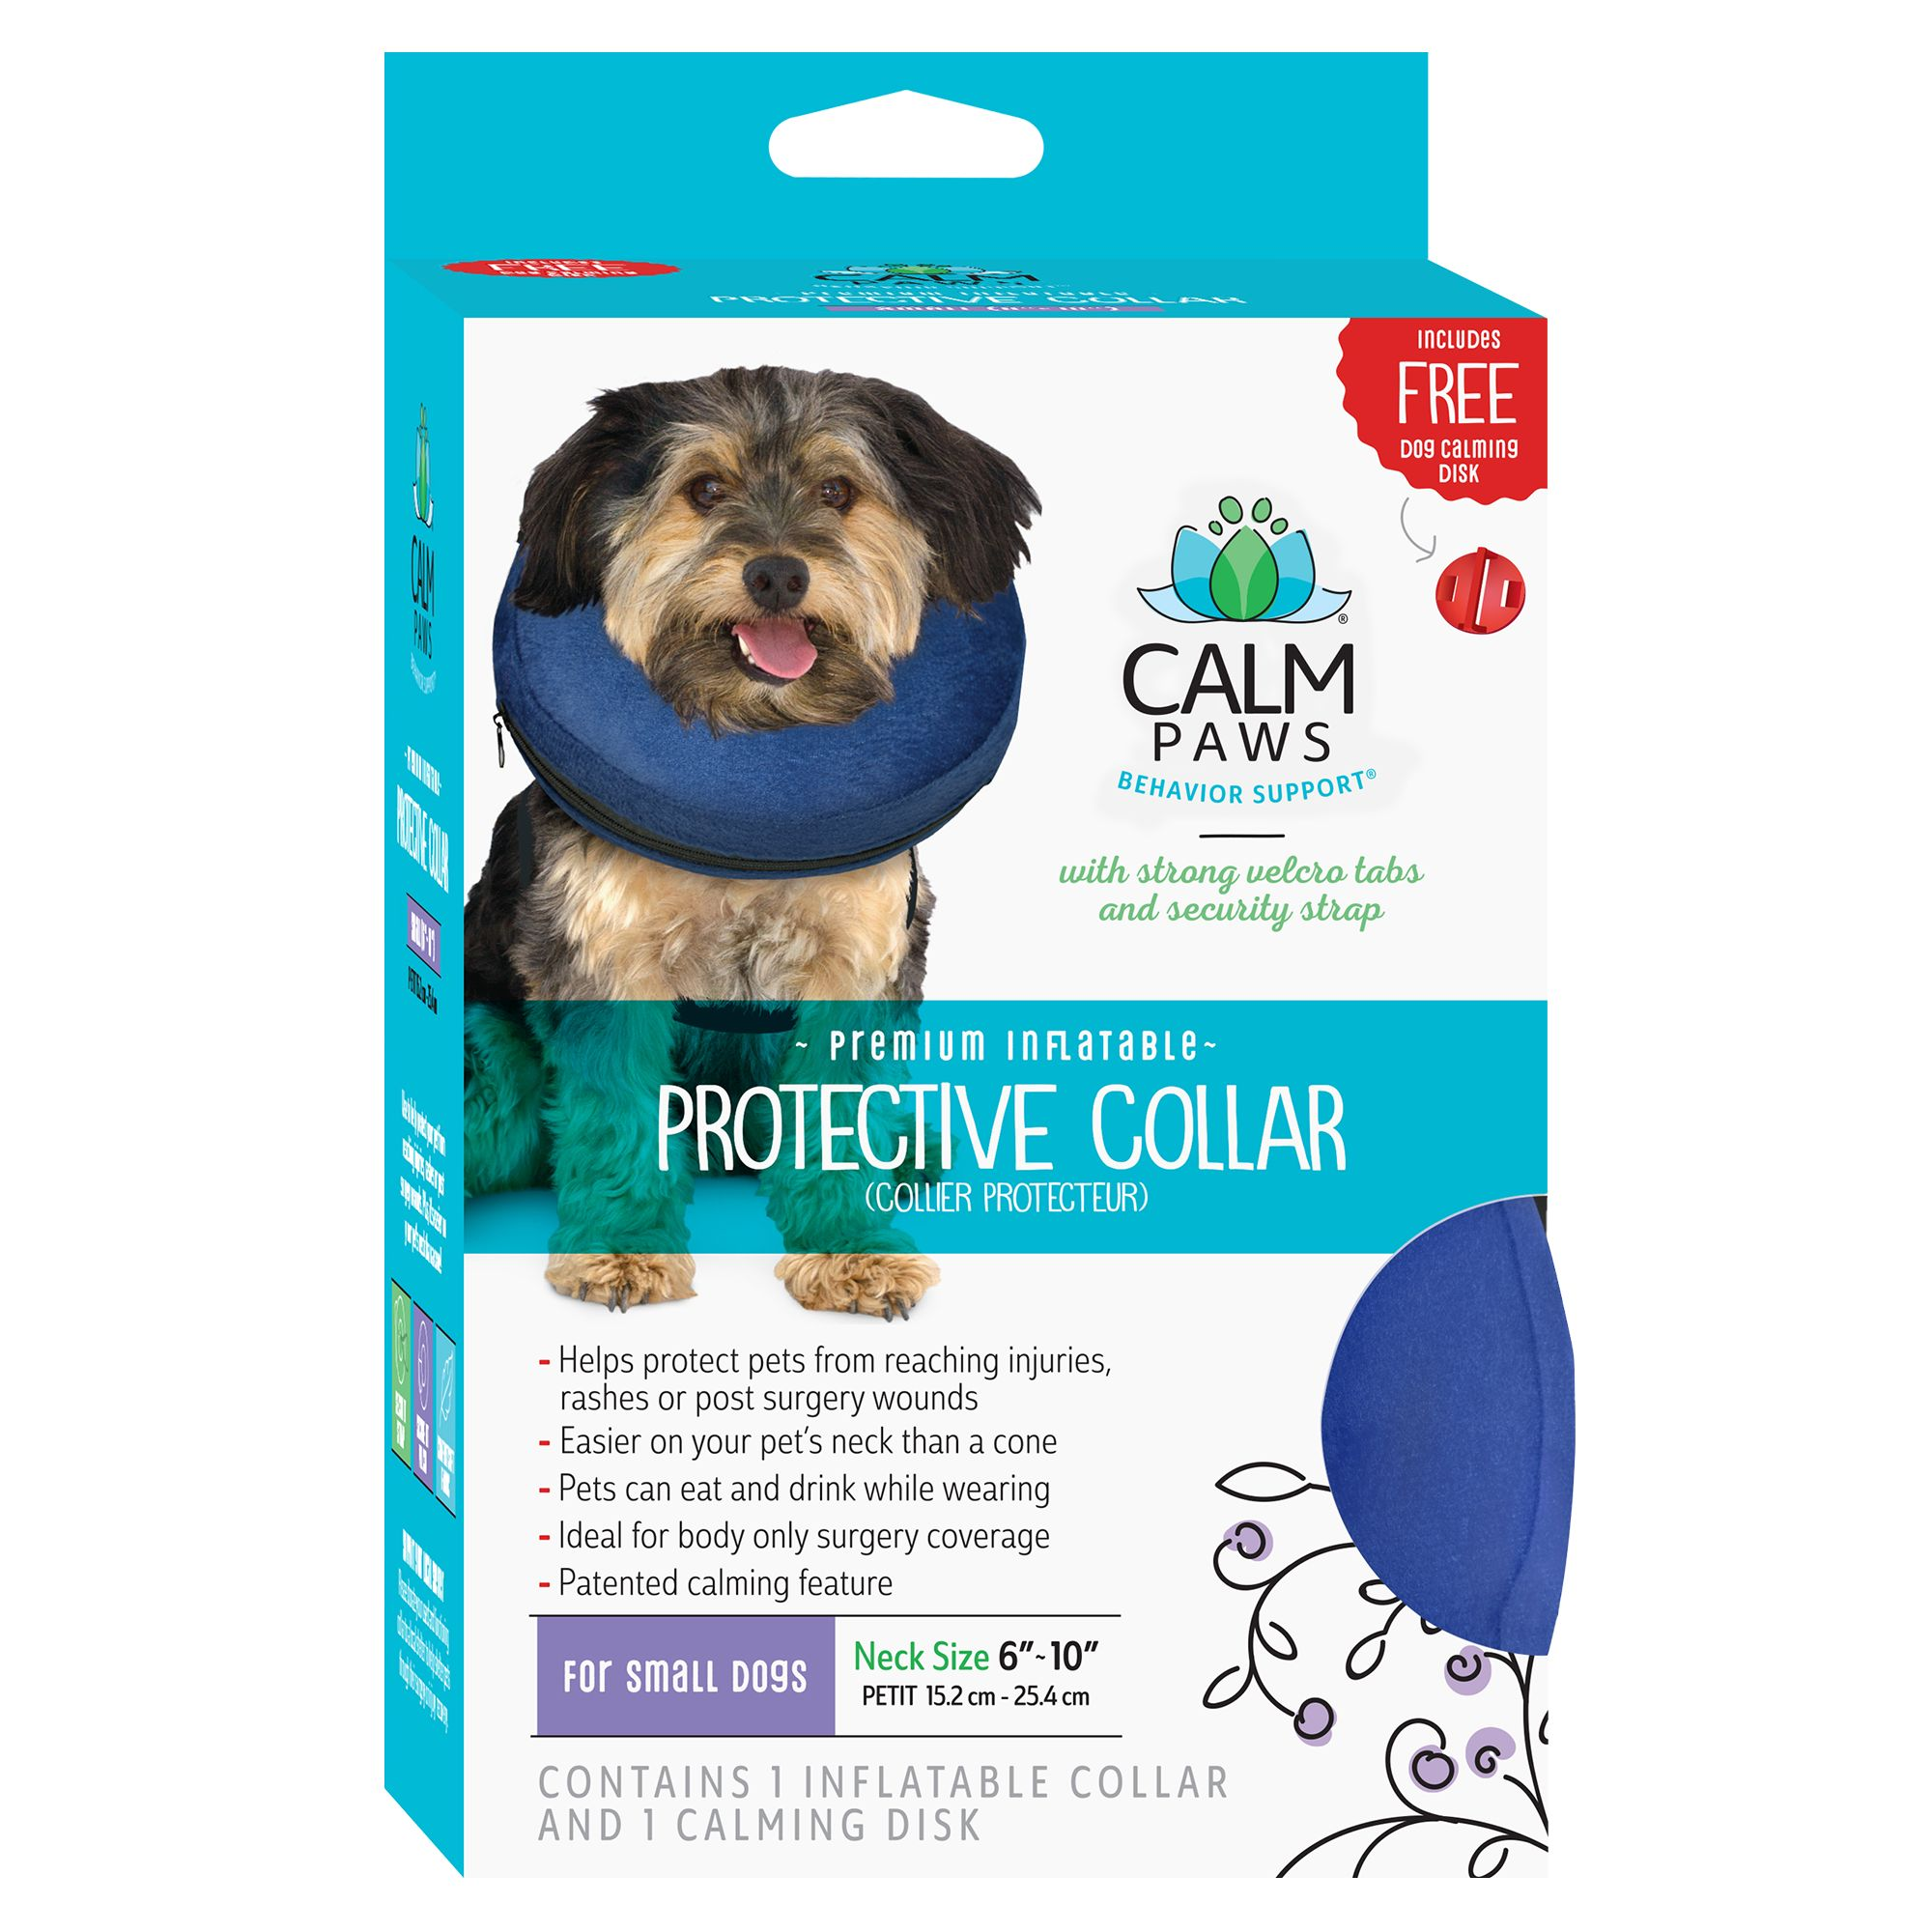 Calm Paws Behavior Support Trade Protective Inflatable Pet Collar Dog Training Collars Leashes Harnesses Petsmart